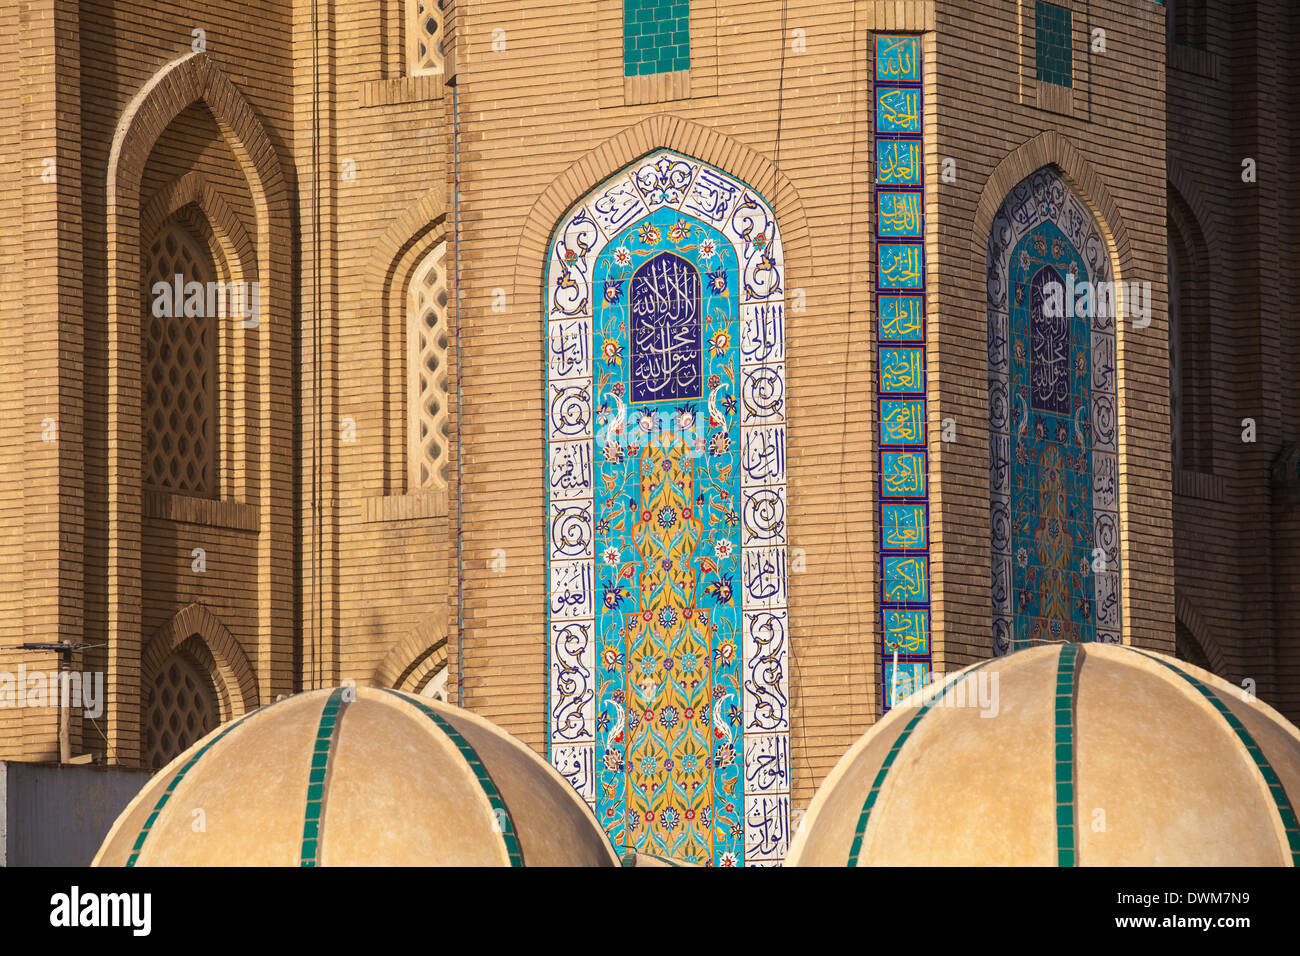 Jalil Khayat Mosque, Erbil, Kurdistan, Iraq, Middle East - Stock Image